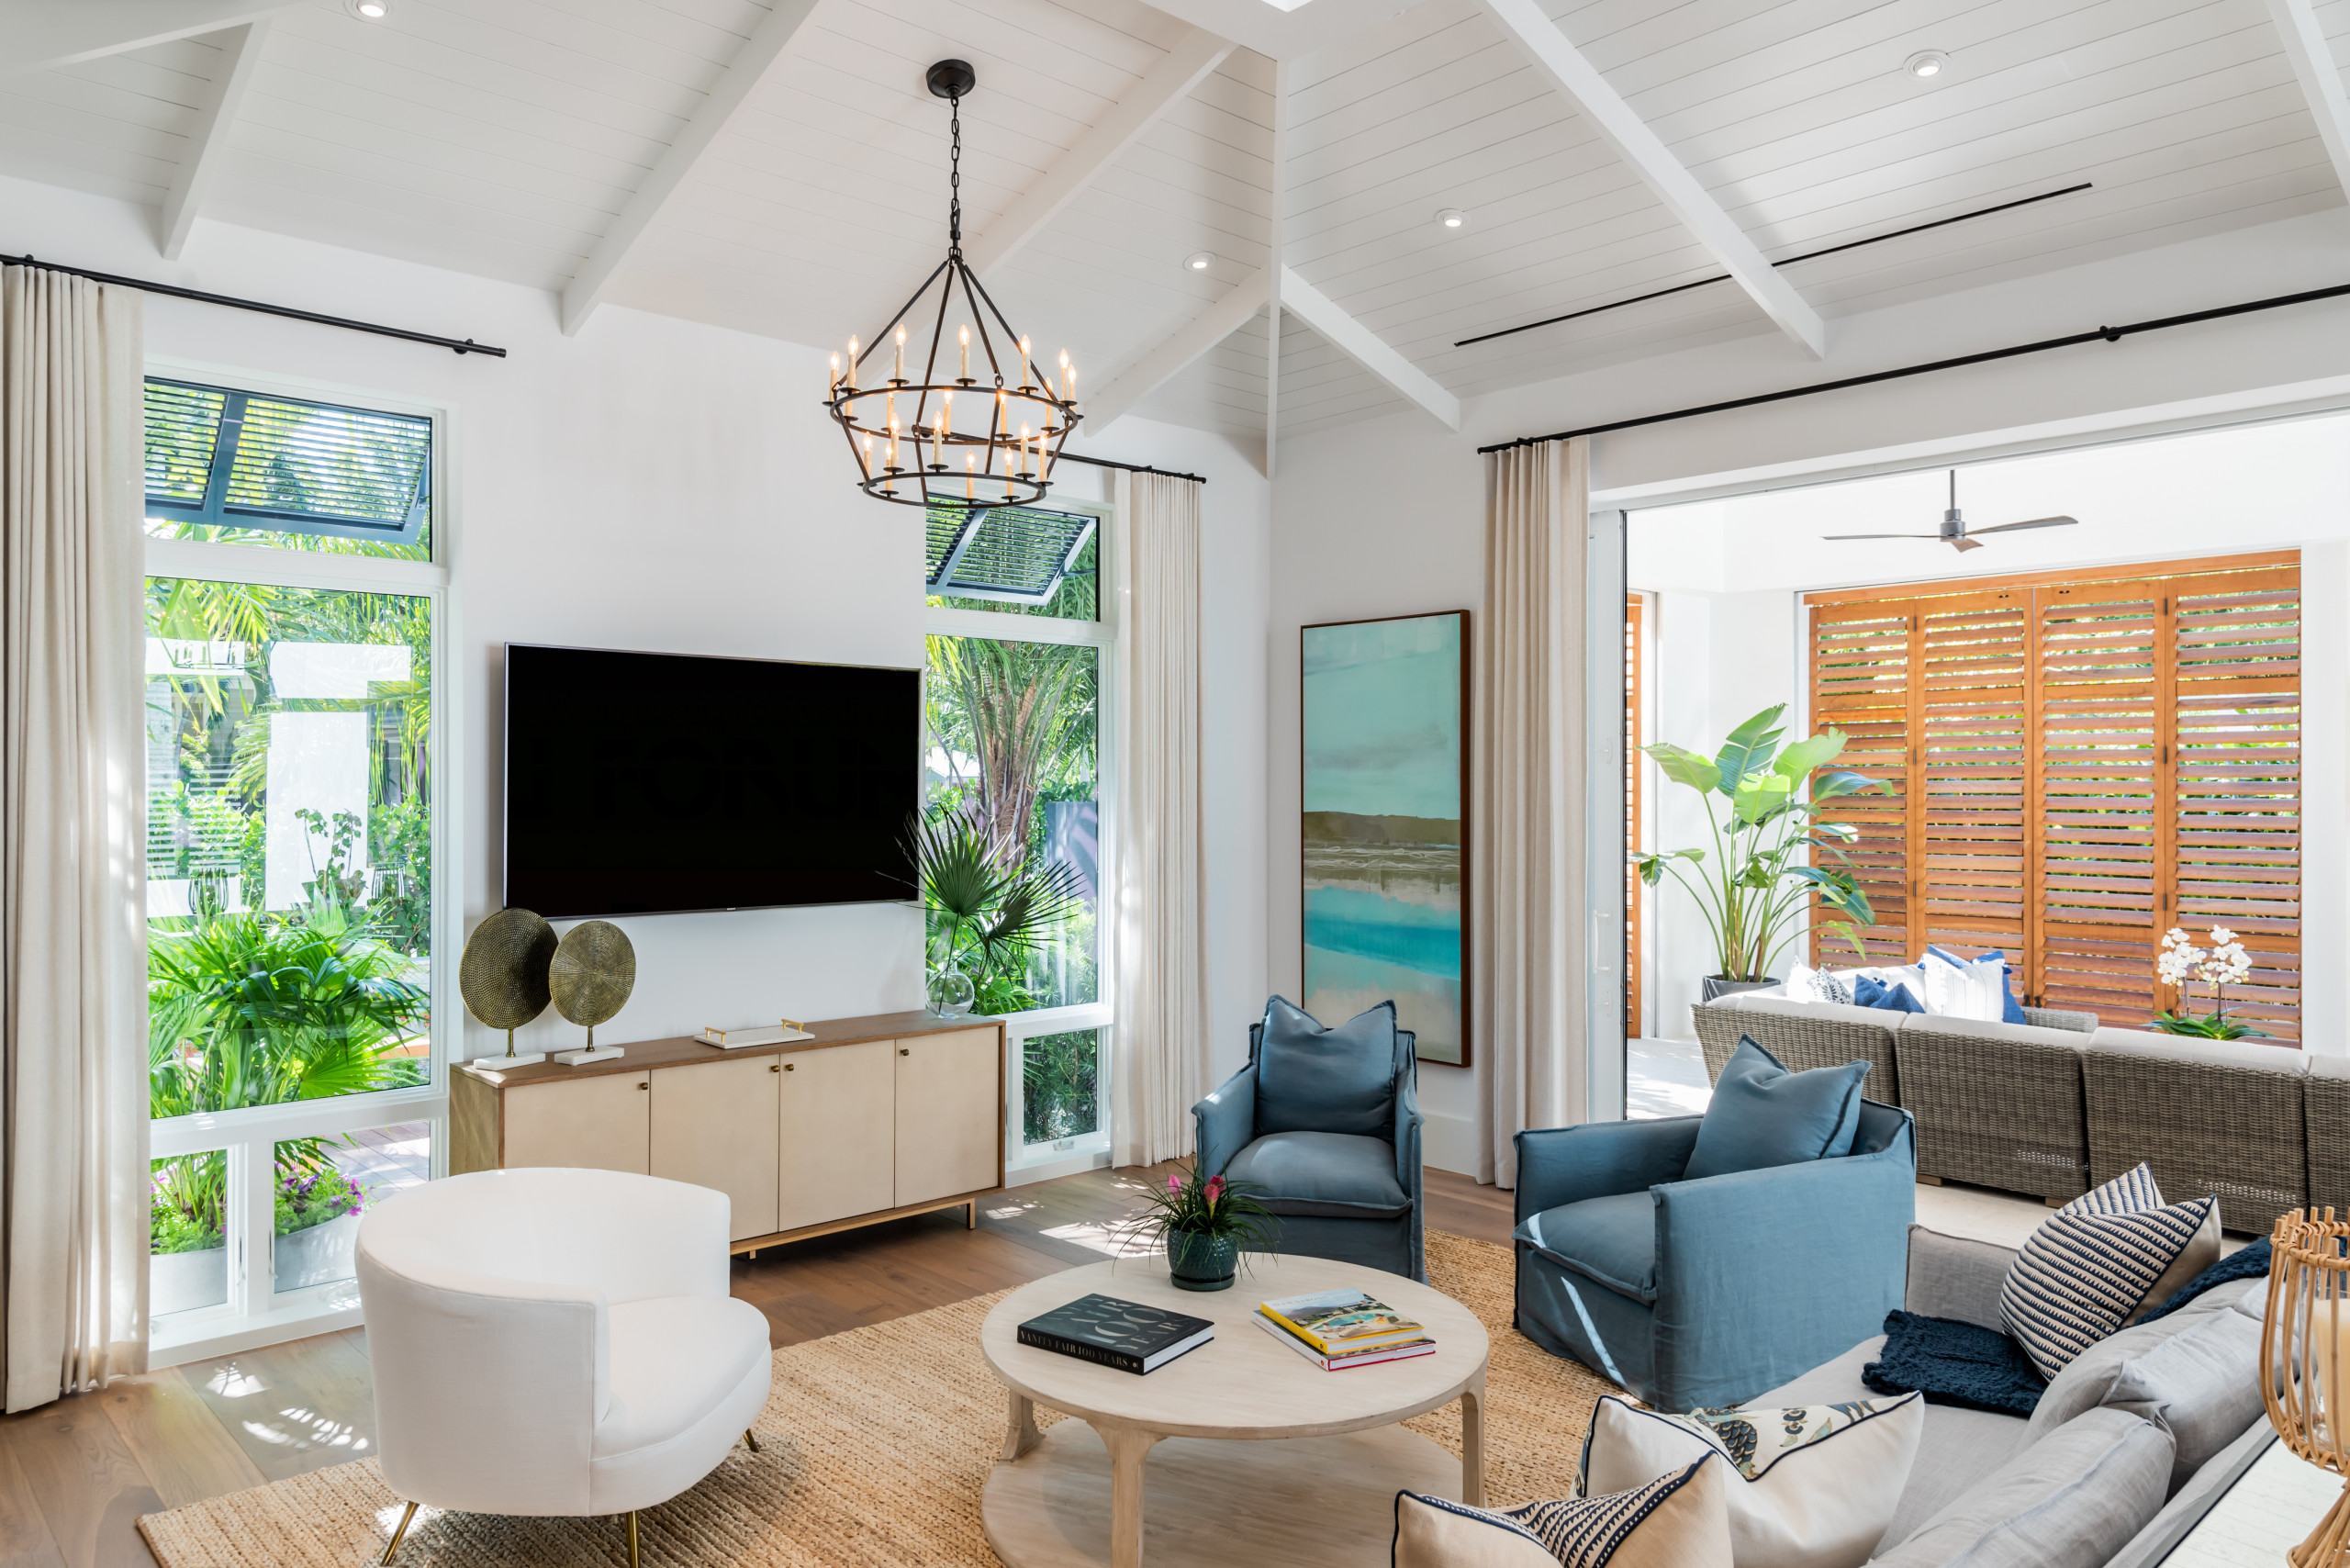 75 Beautiful Open Concept Living Room Pictures Ideas February 2021 Houzz